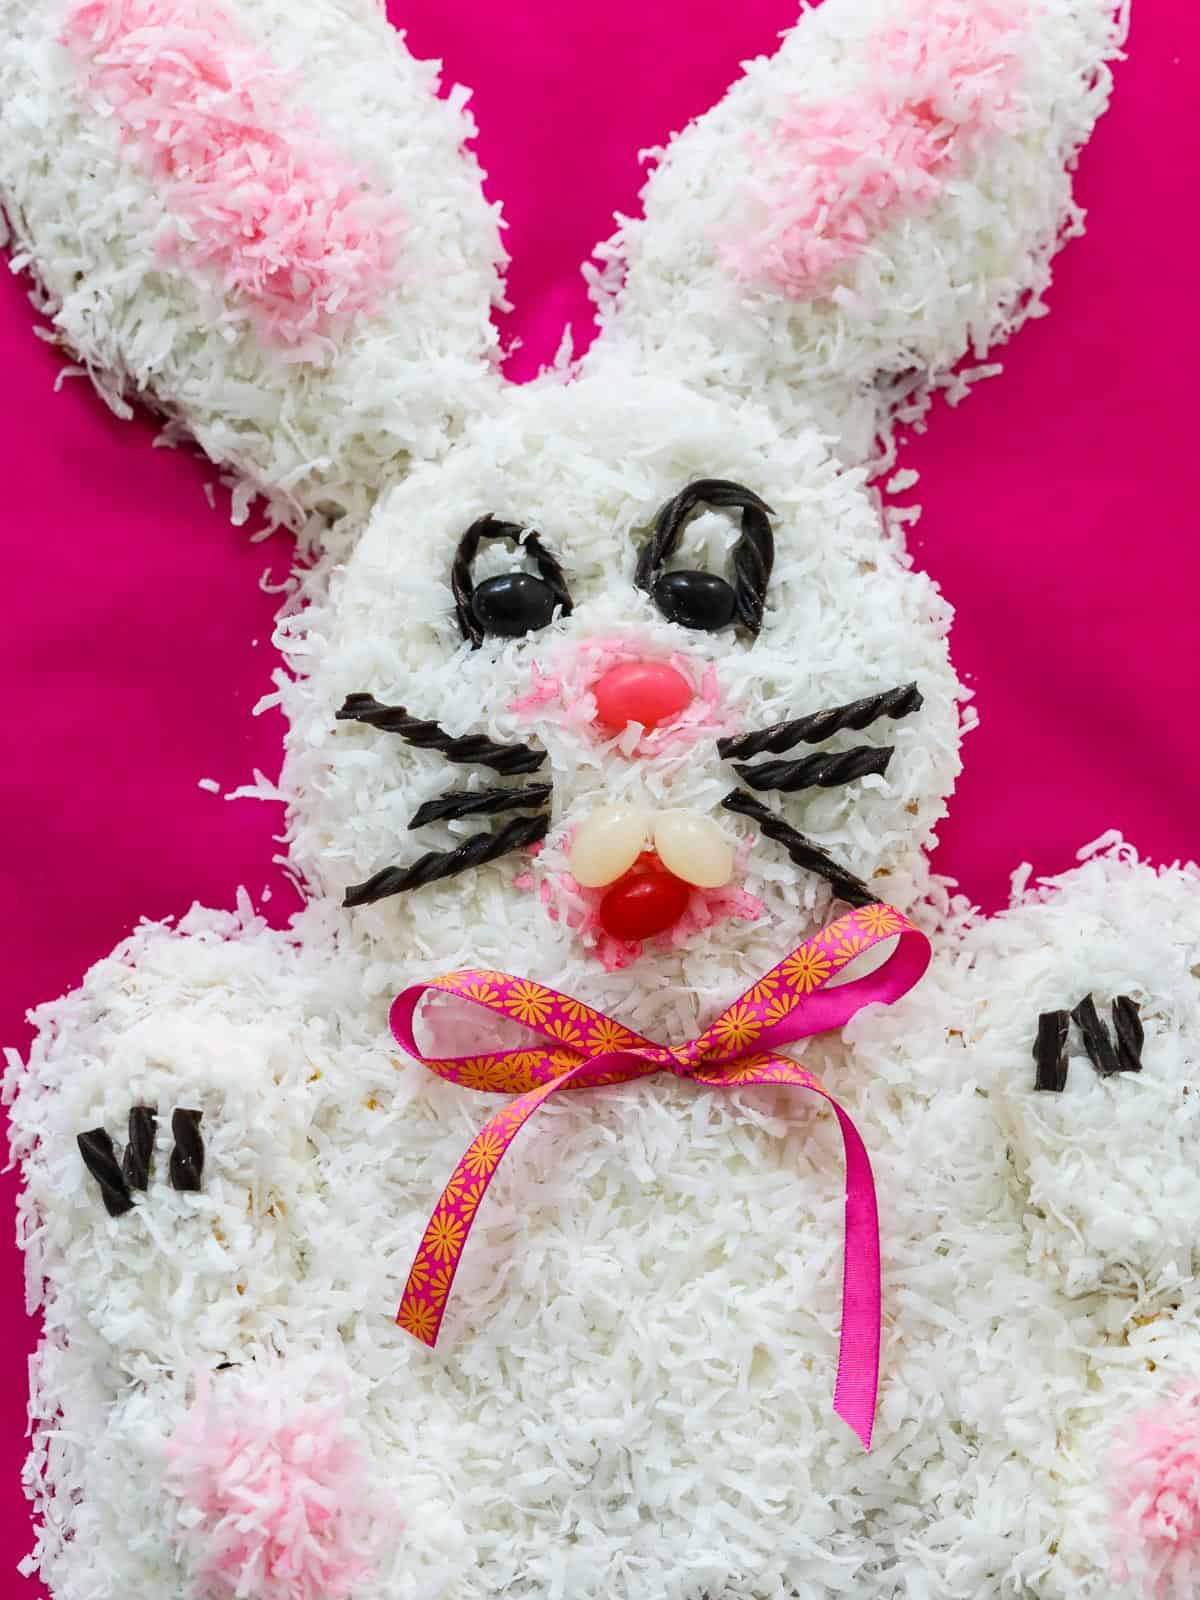 A close up of an Easter cake that is a bunny rabbit, with pink coconut ears and licorice whiskers.